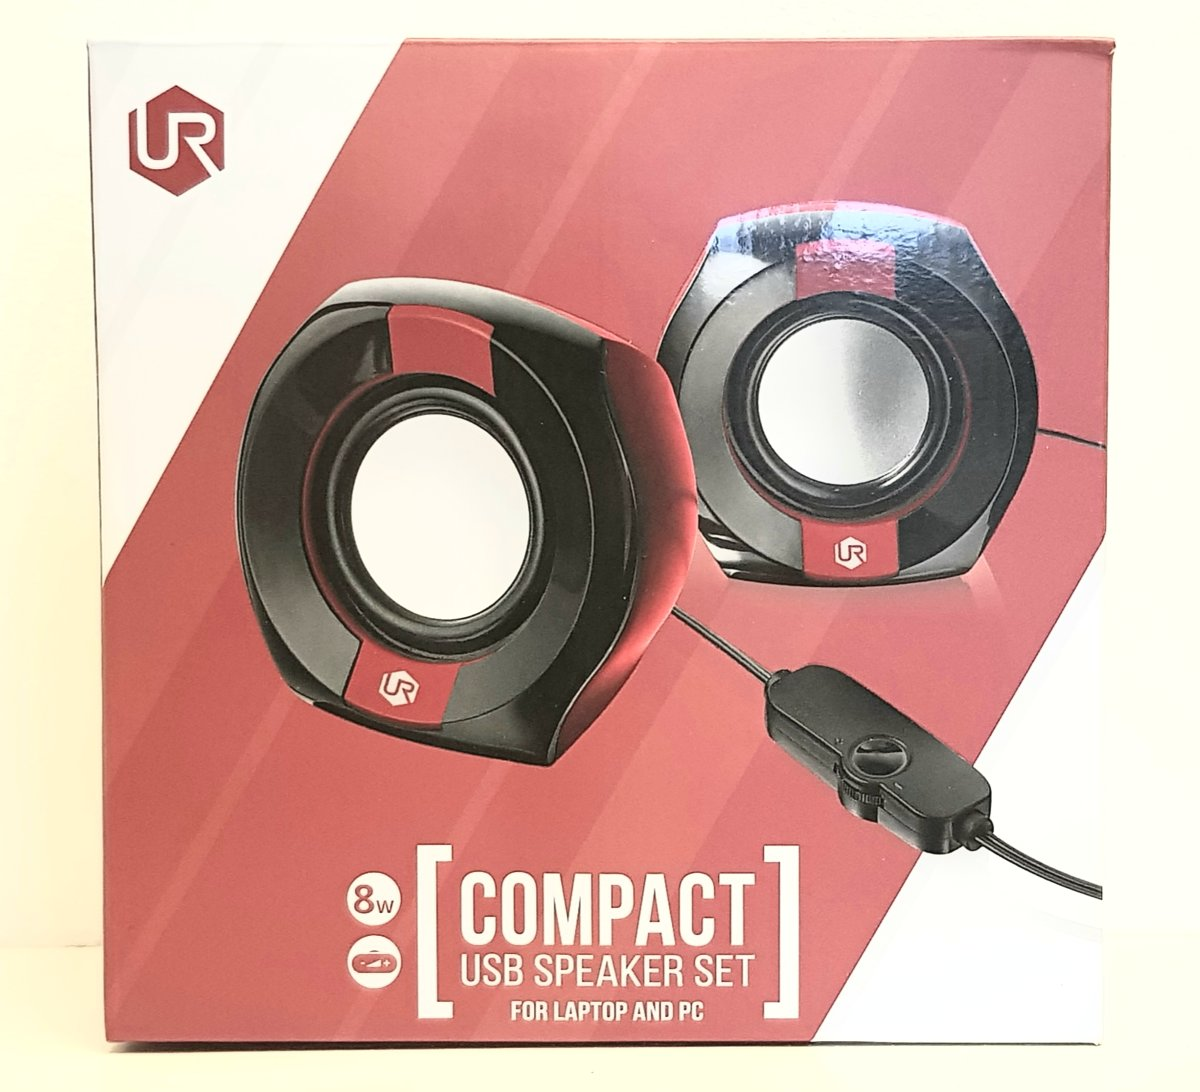 Urban Compact Speakerset for Laptop and PC Black/Red